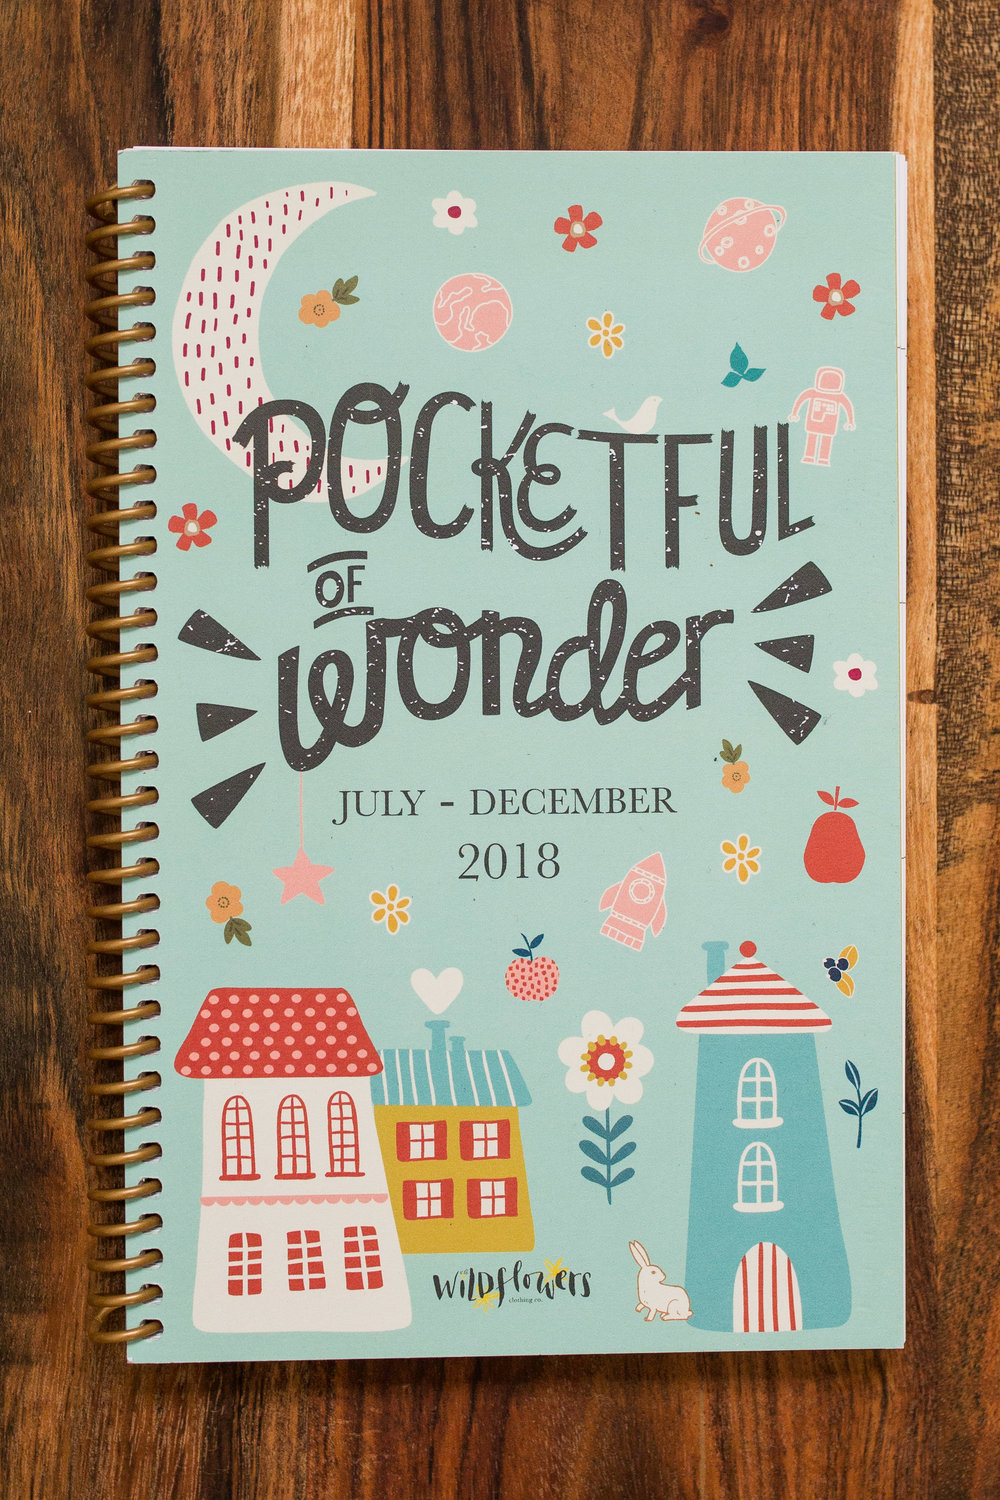 pocketful of wonder wildflowers clothing fall 2018 logo. used on planner. logo designed and handlettered by erin reas a graphic designer in austin, tx